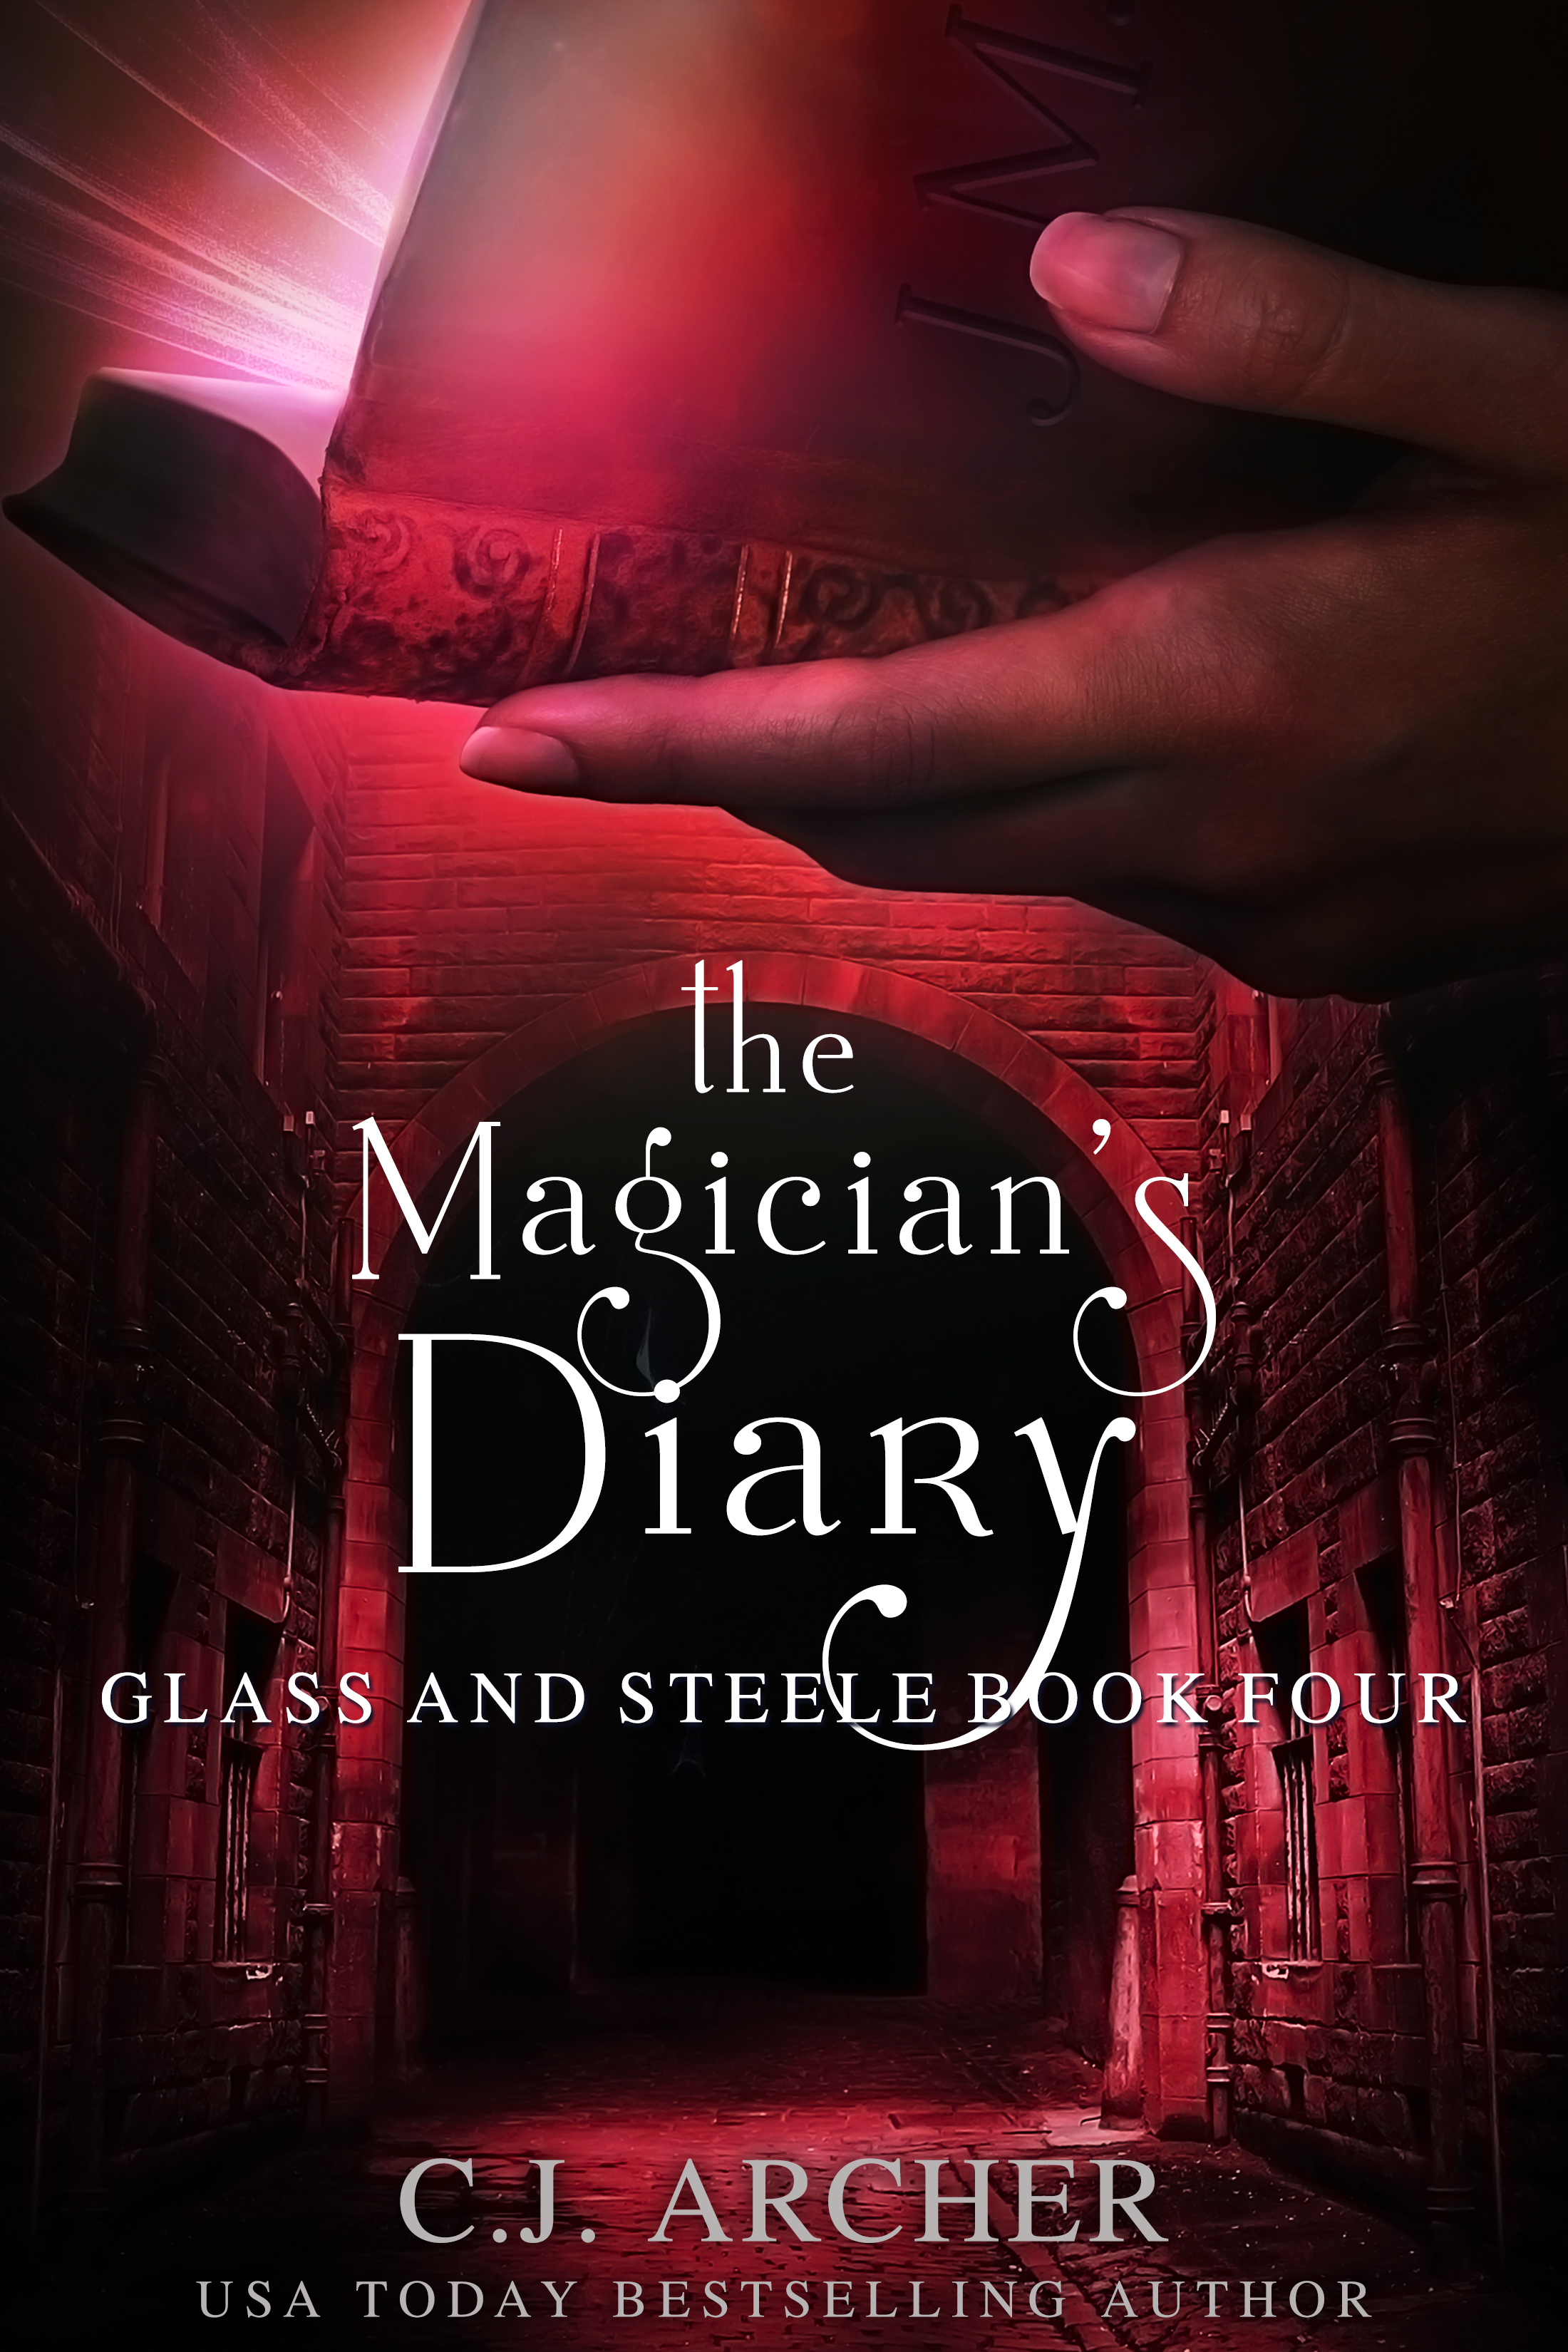 Preorder Now The Magician's Diary